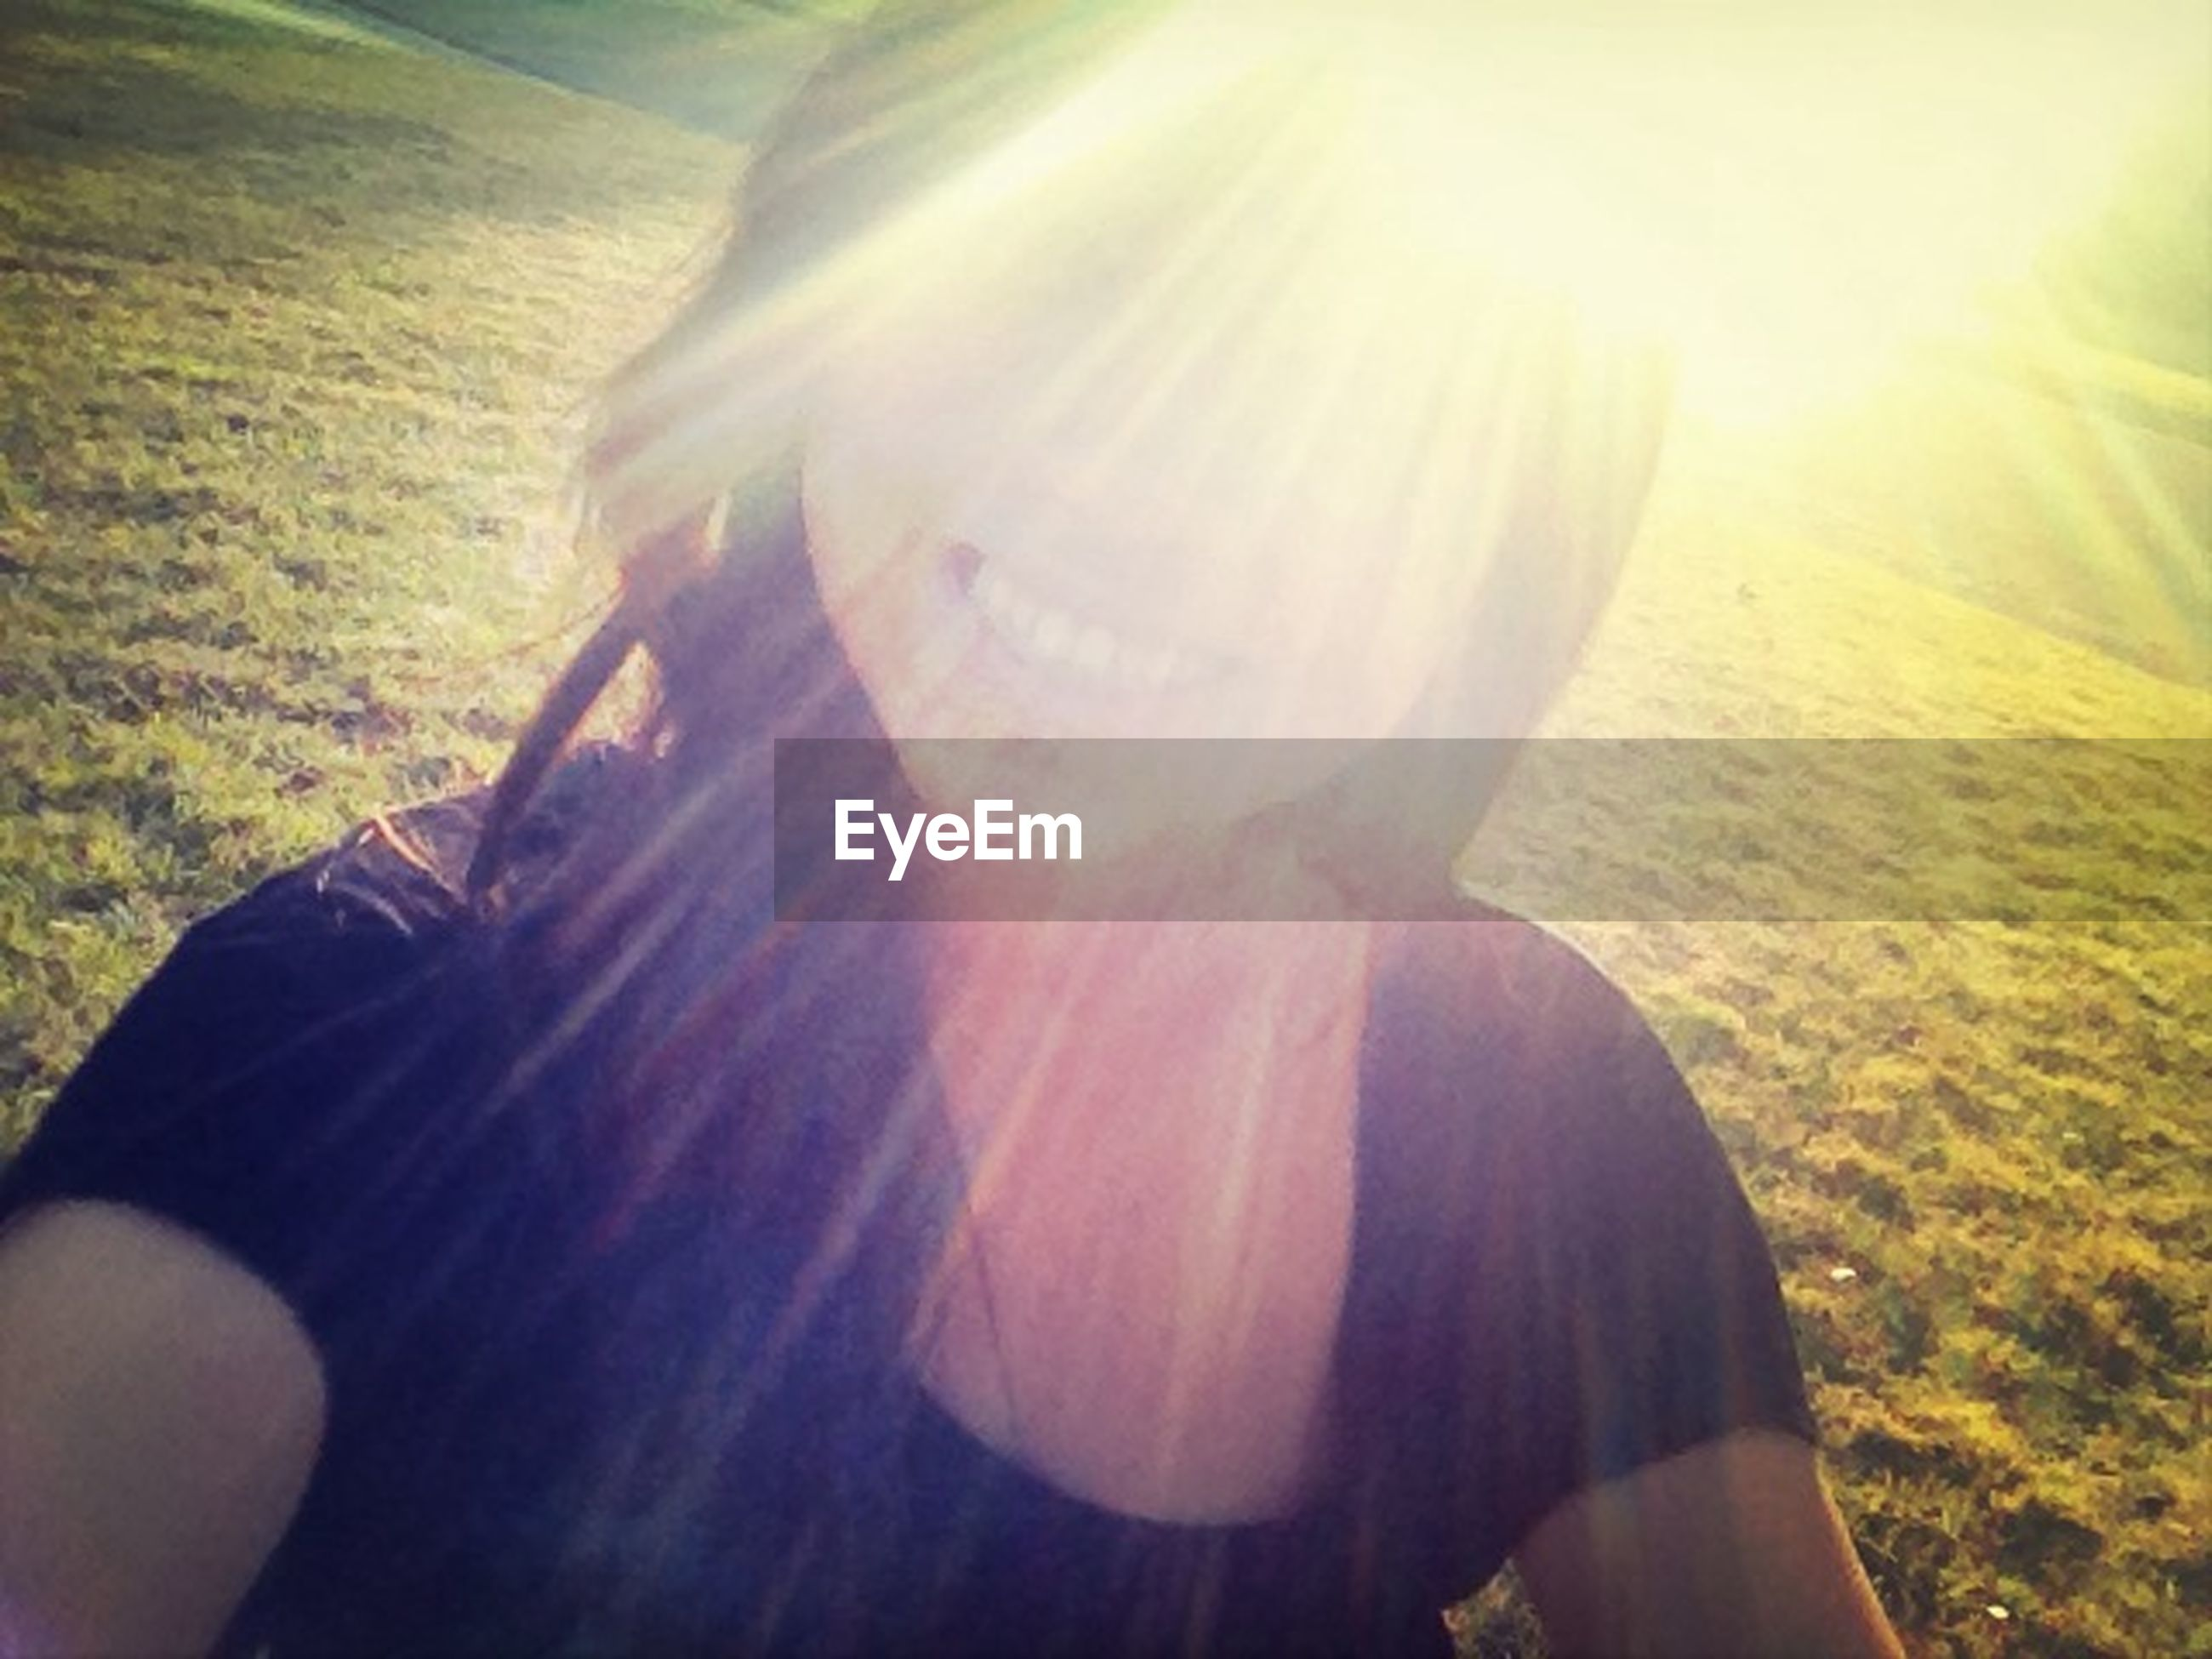 part of, cropped, sunlight, sunbeam, nature, beauty in nature, close-up, travel, day, lens flare, sun, outdoors, person, scenics, tranquility, landscape, unrecognizable person